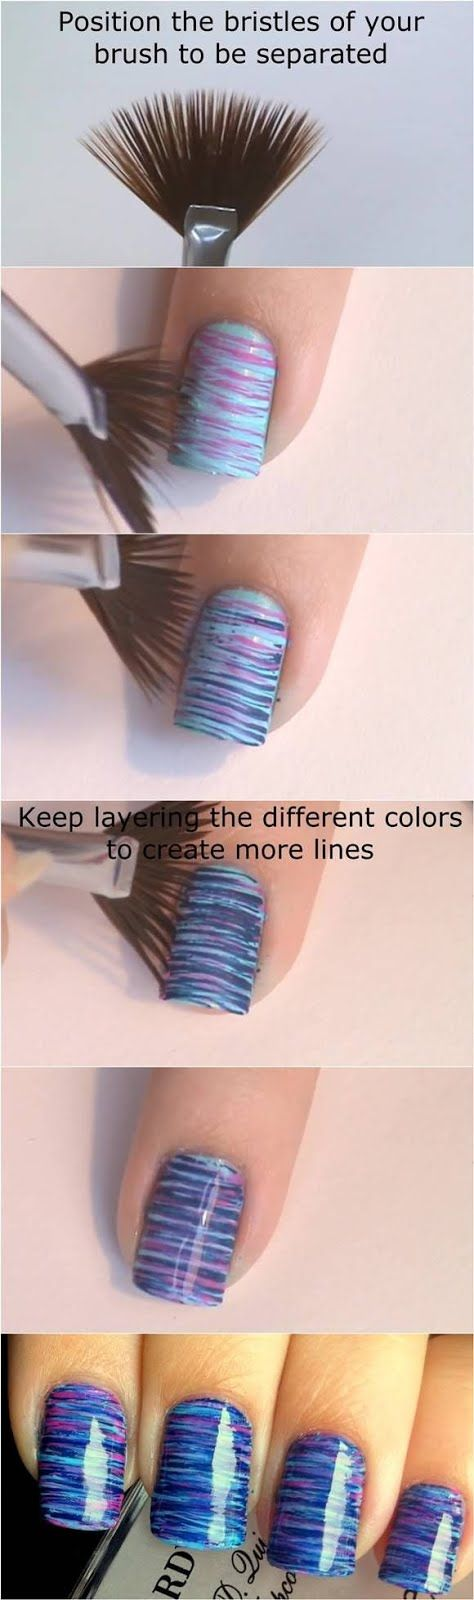 Nail art is such a wonderful way to highlight your fashion style. Here is a DIY tutorial to show you how to make blue and pink fan brush str...